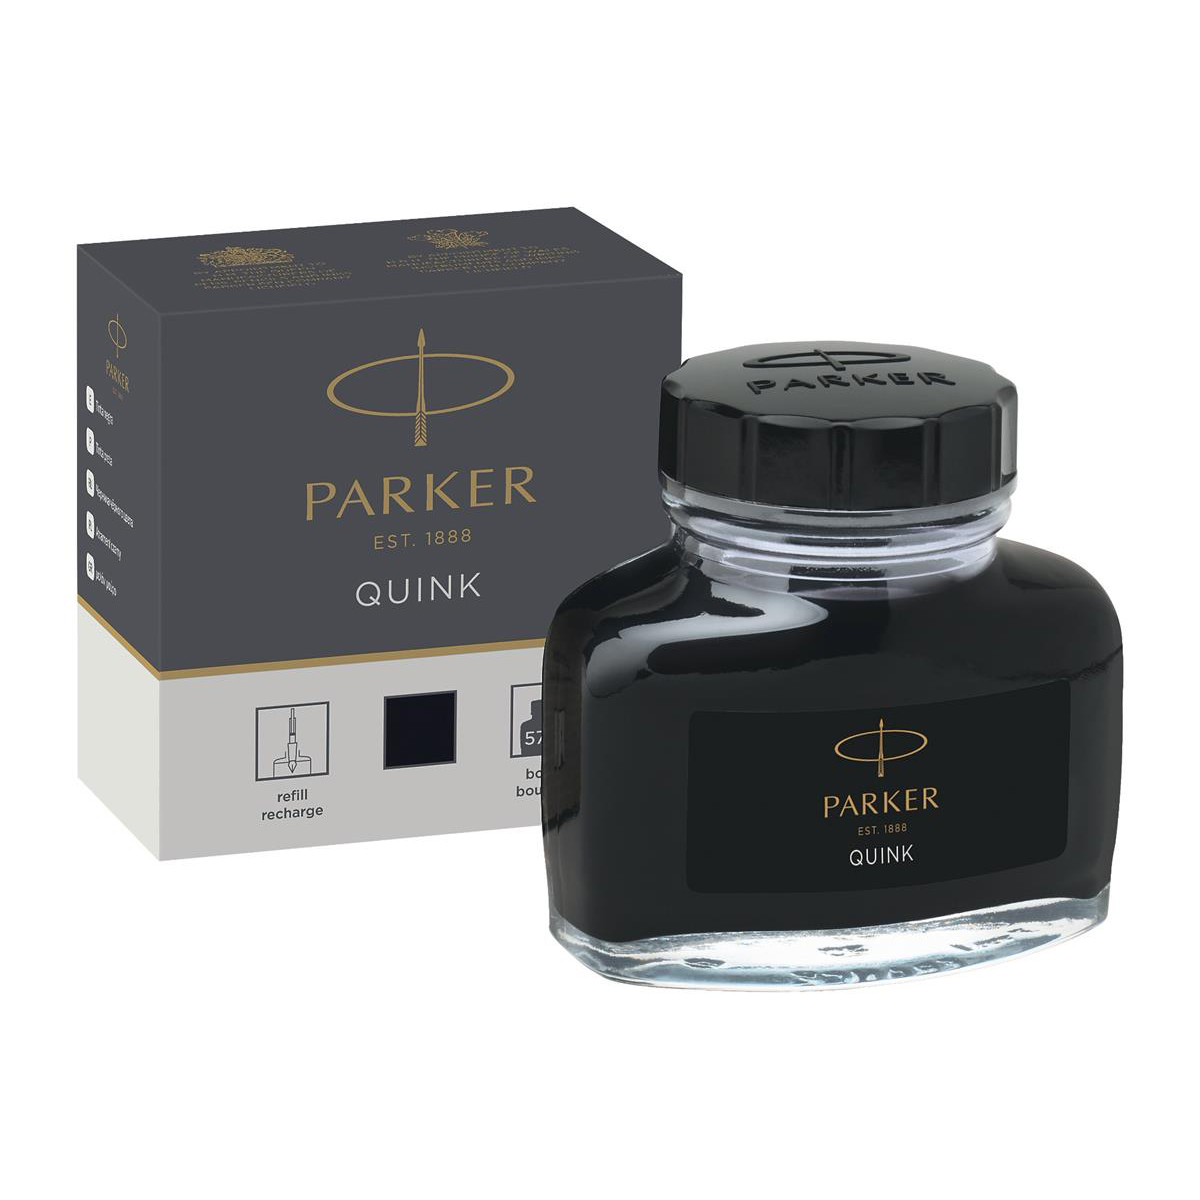 Bottle Parker Quink Bottled Ink for Fountain Pens 57ml Black Ref 1950375